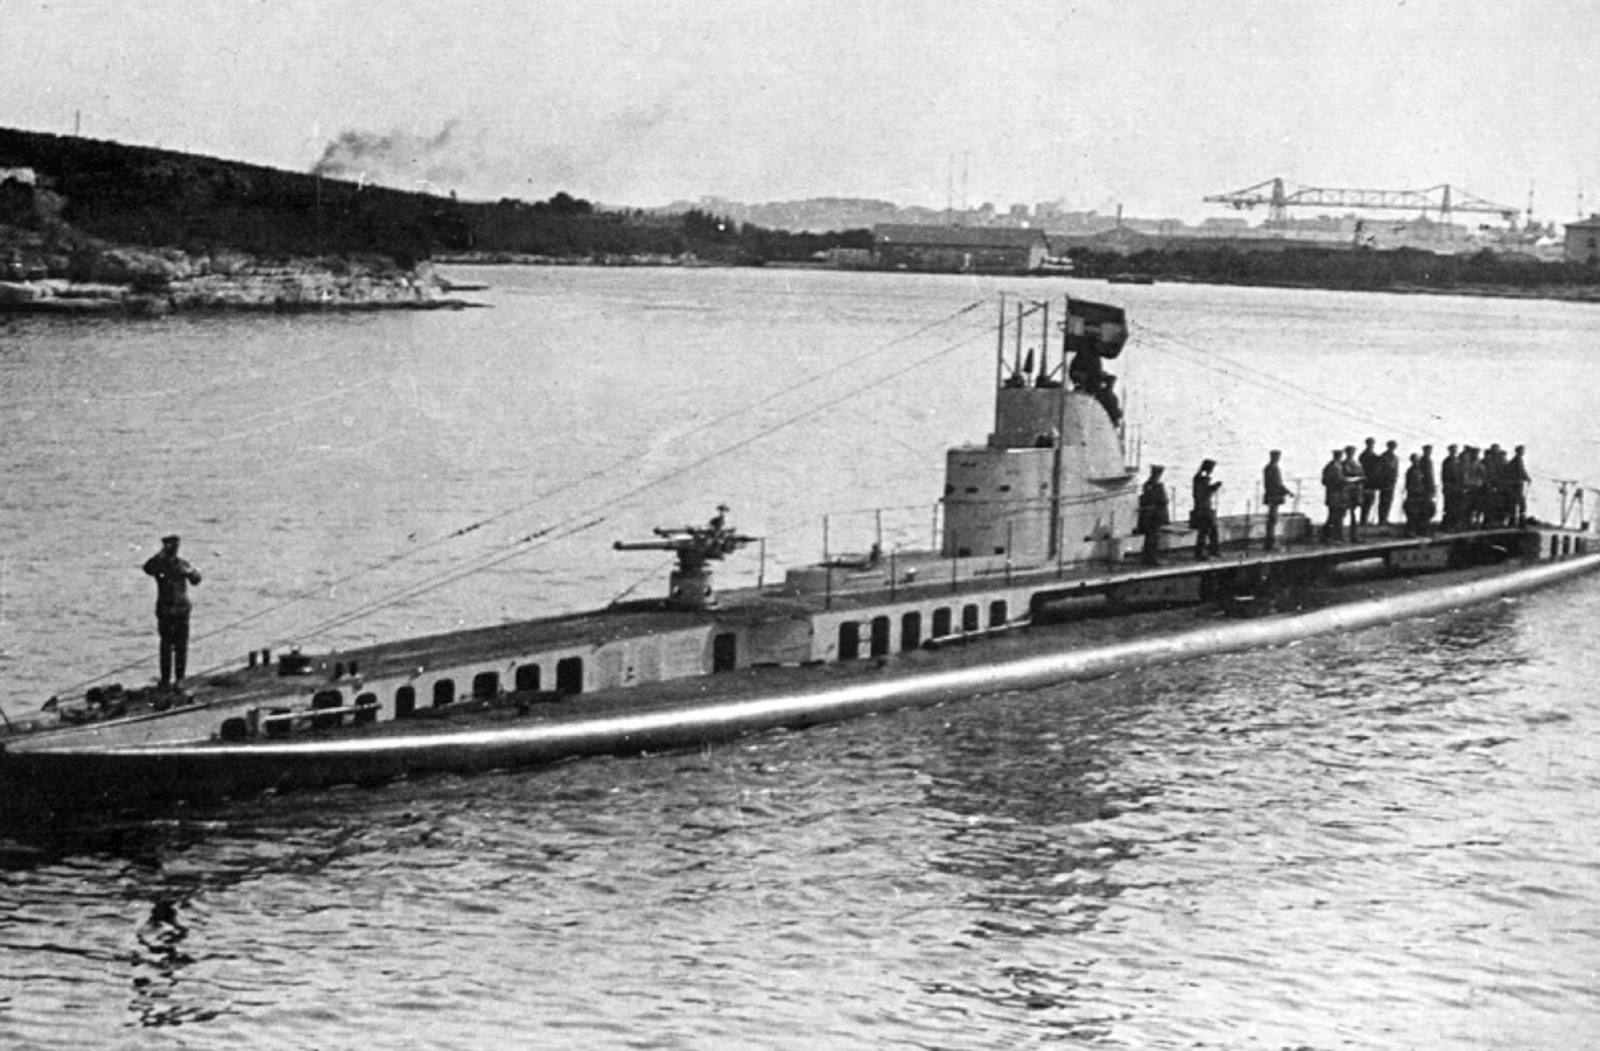 French submarine Curie, captured and renamed S.M. U-14 bis